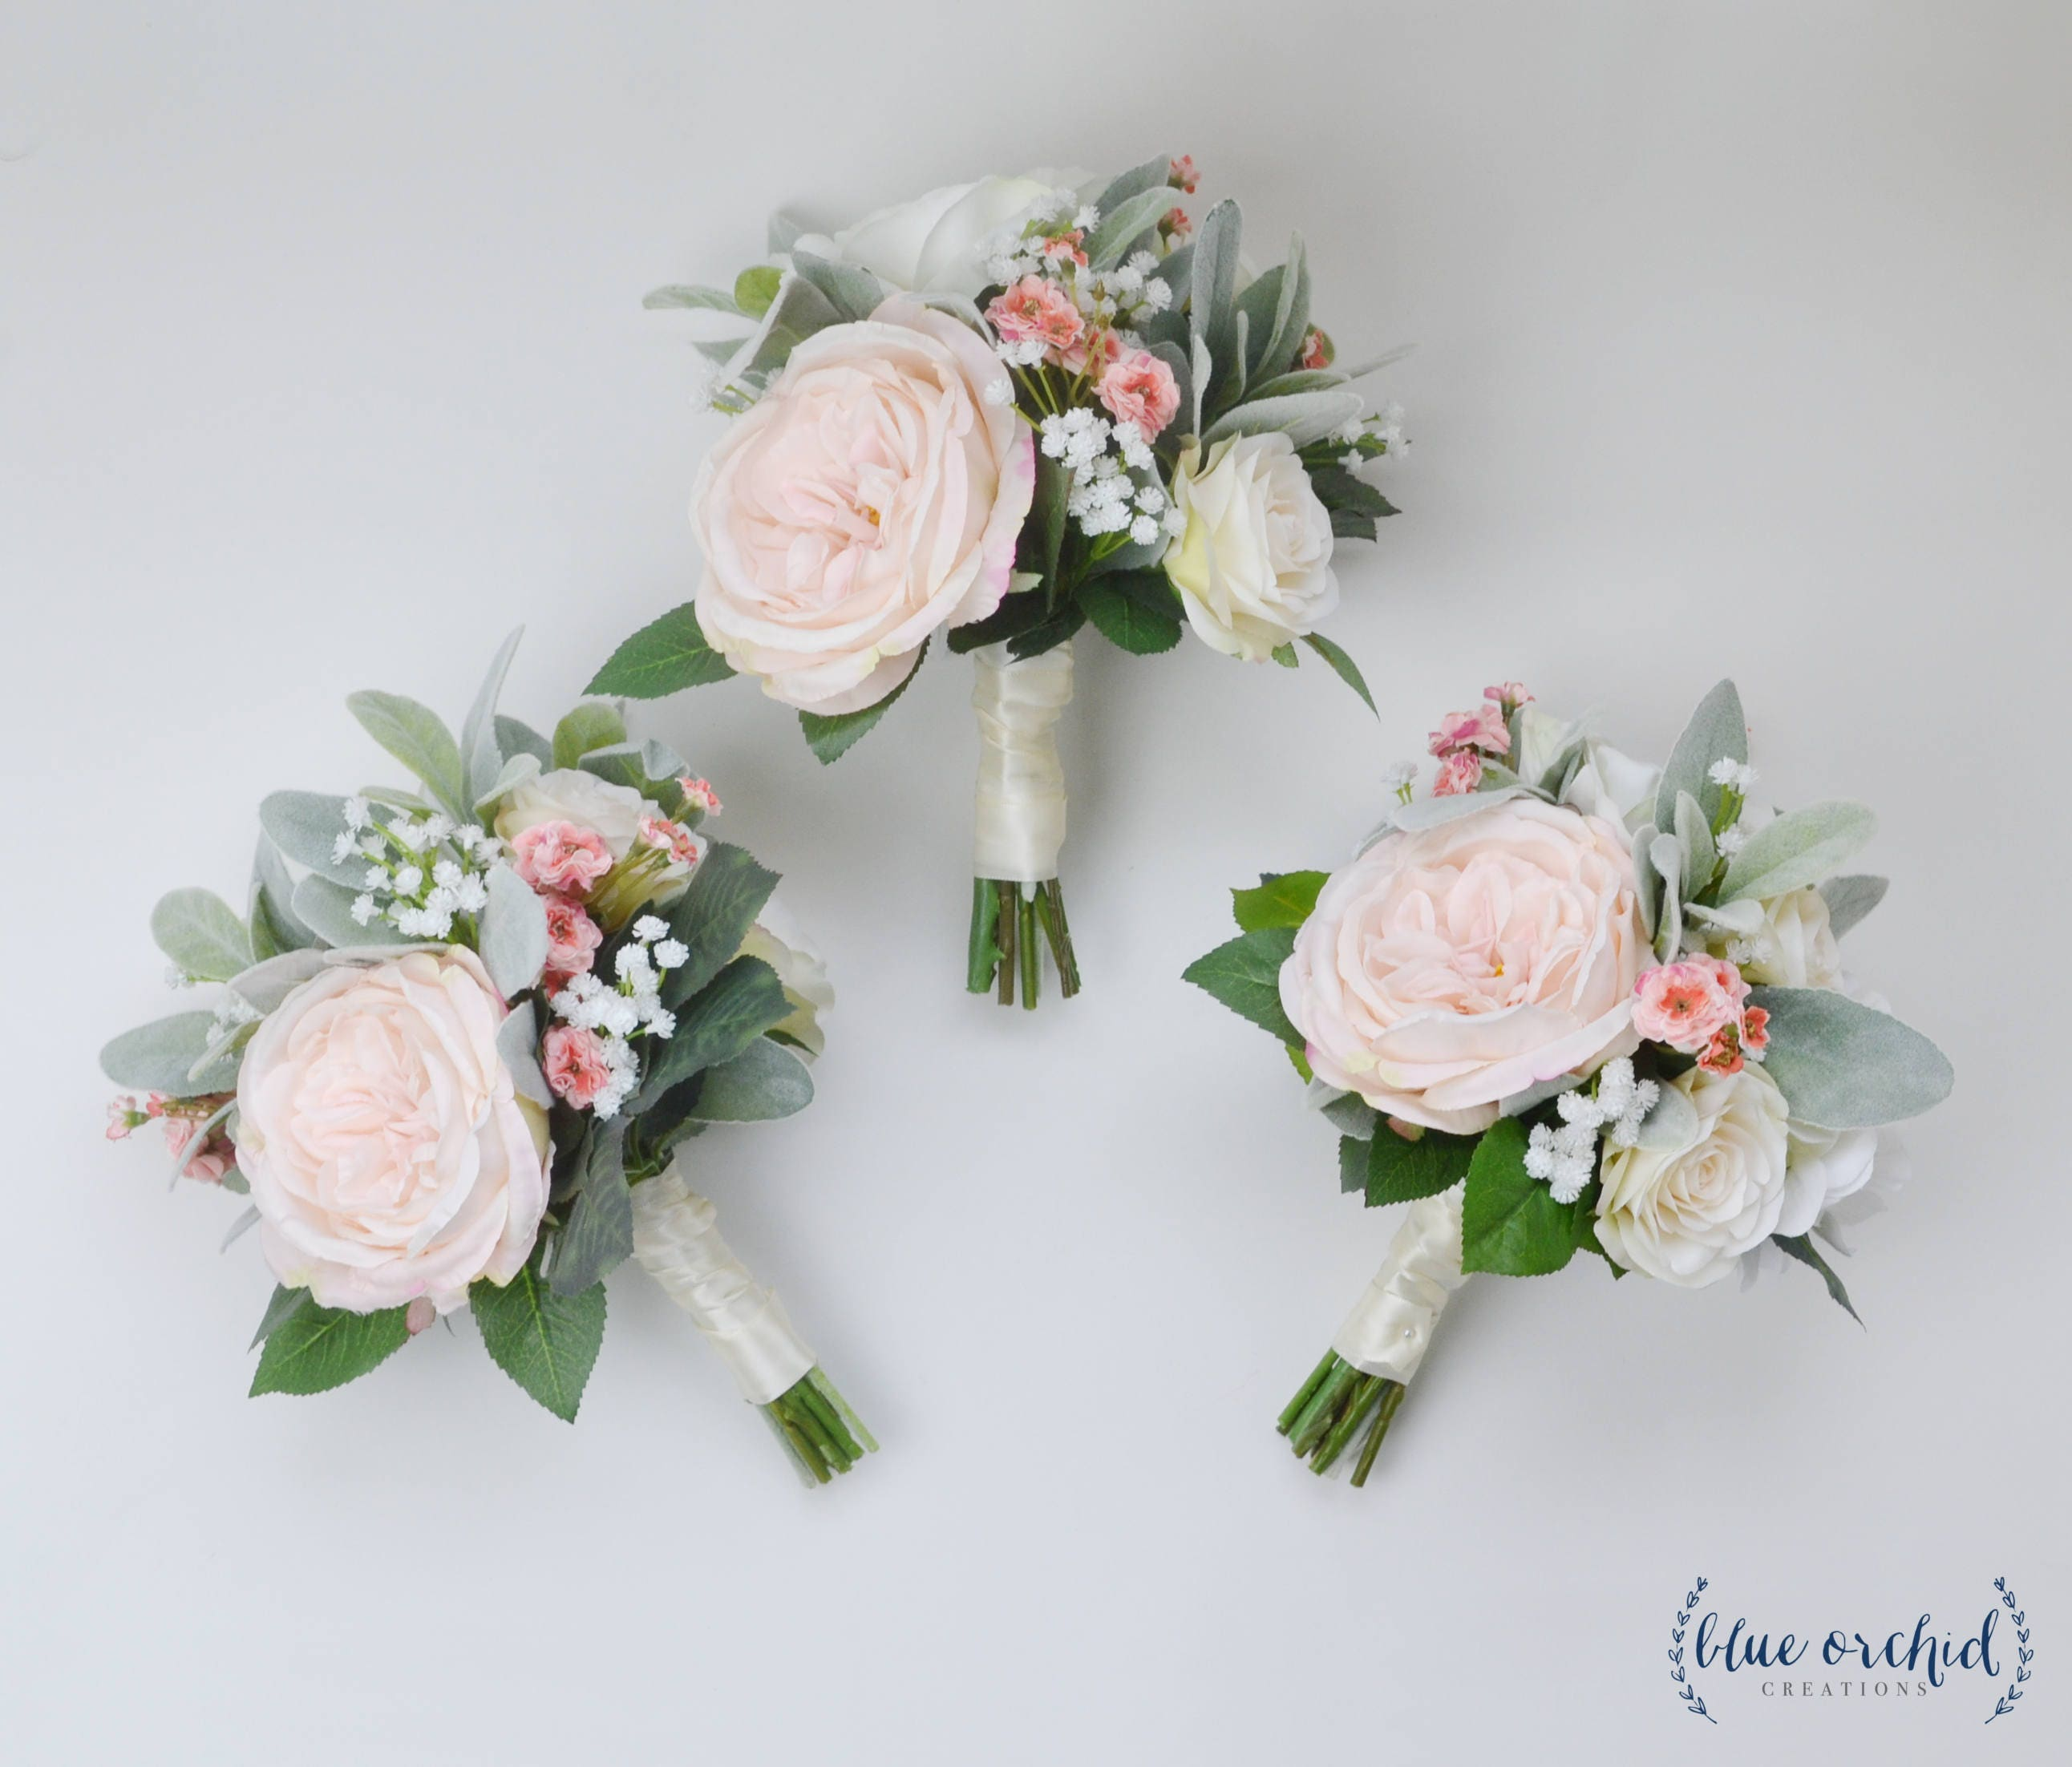 Wedding Bridal Flowers: Wedding Flowers Bridesmaid Bouquet Bridesmaid Bouquet Boho